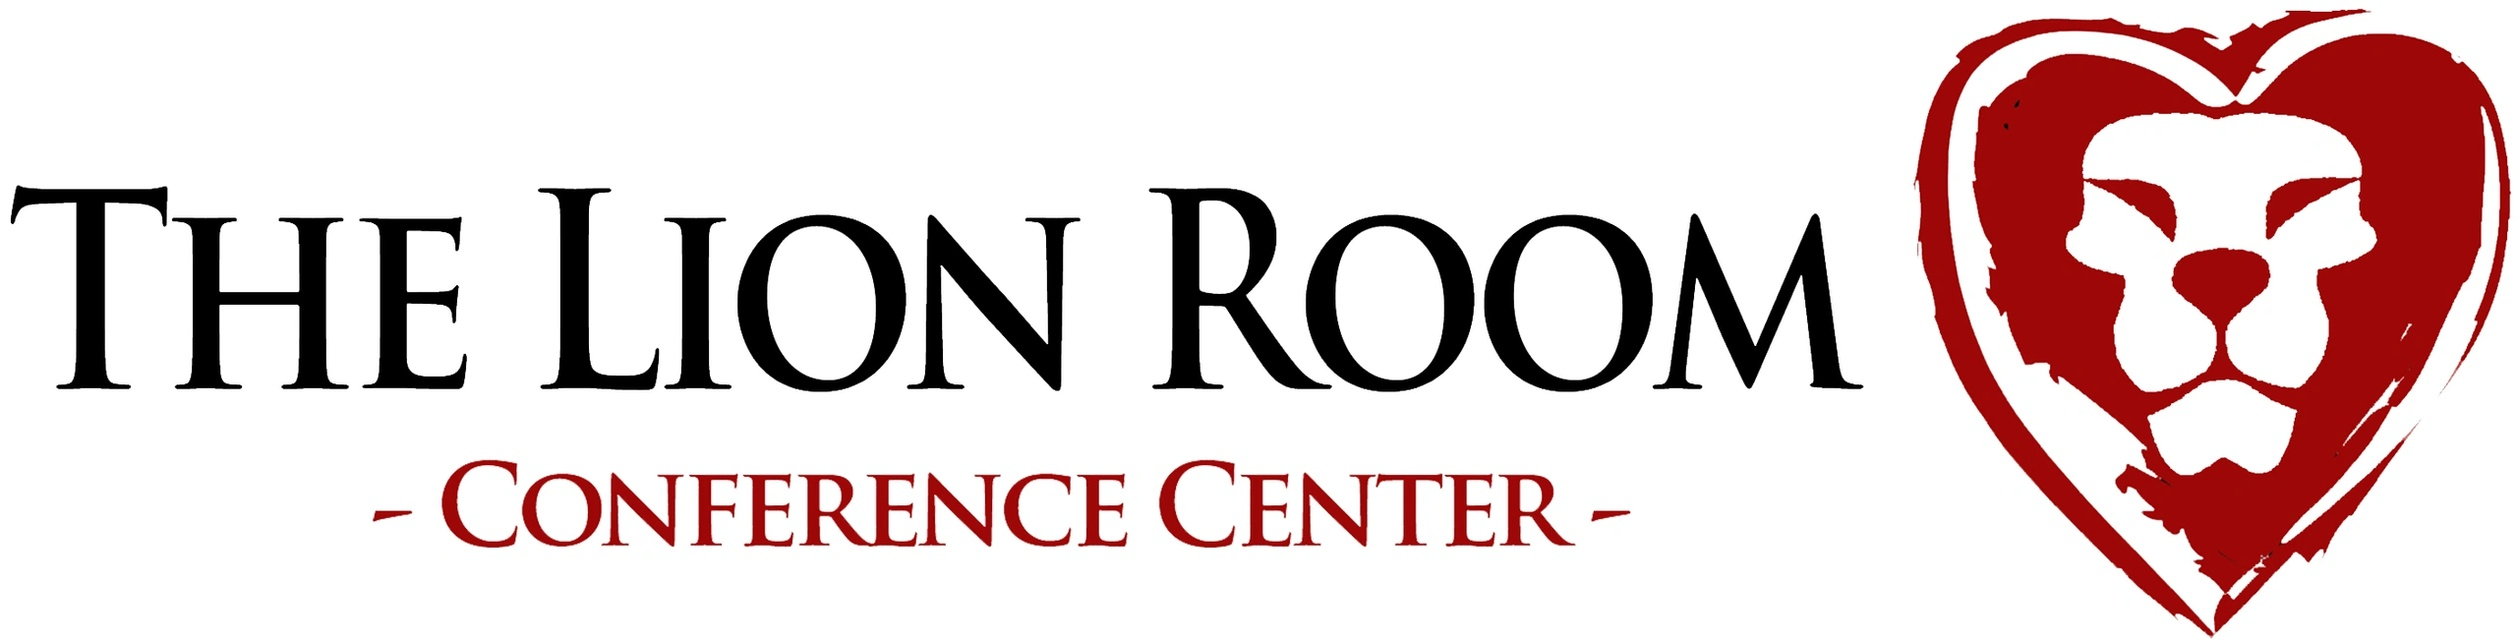 The Lion Room Conference Center